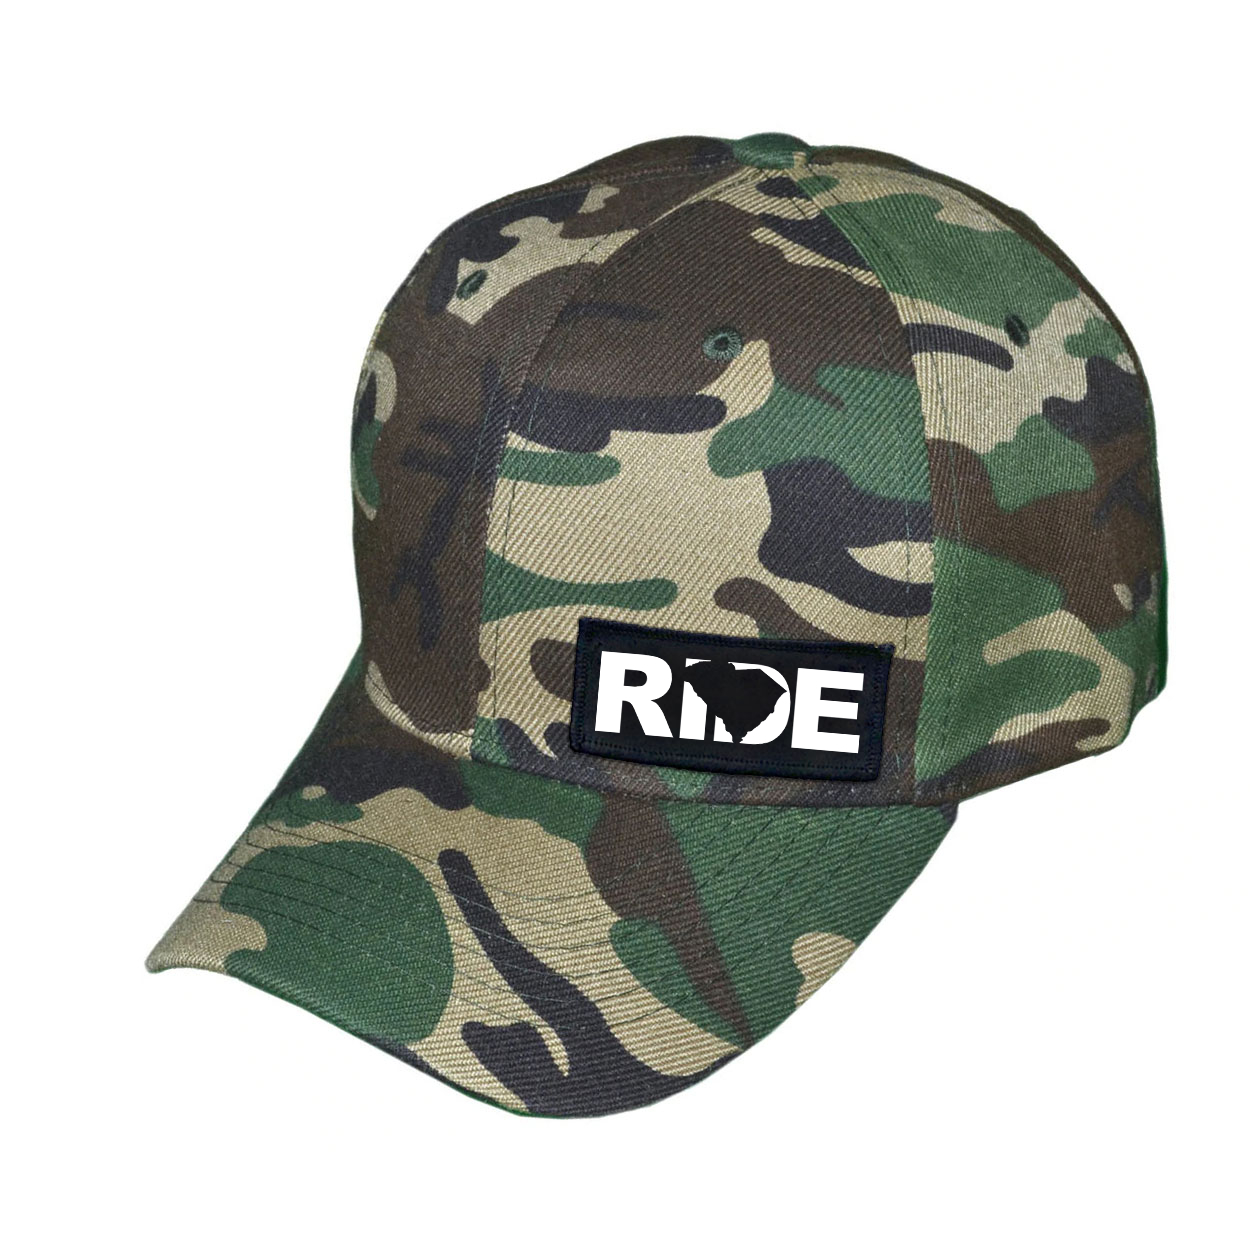 Ride South Carolina Night Out Woven Patch Hat Camo (White Logo)